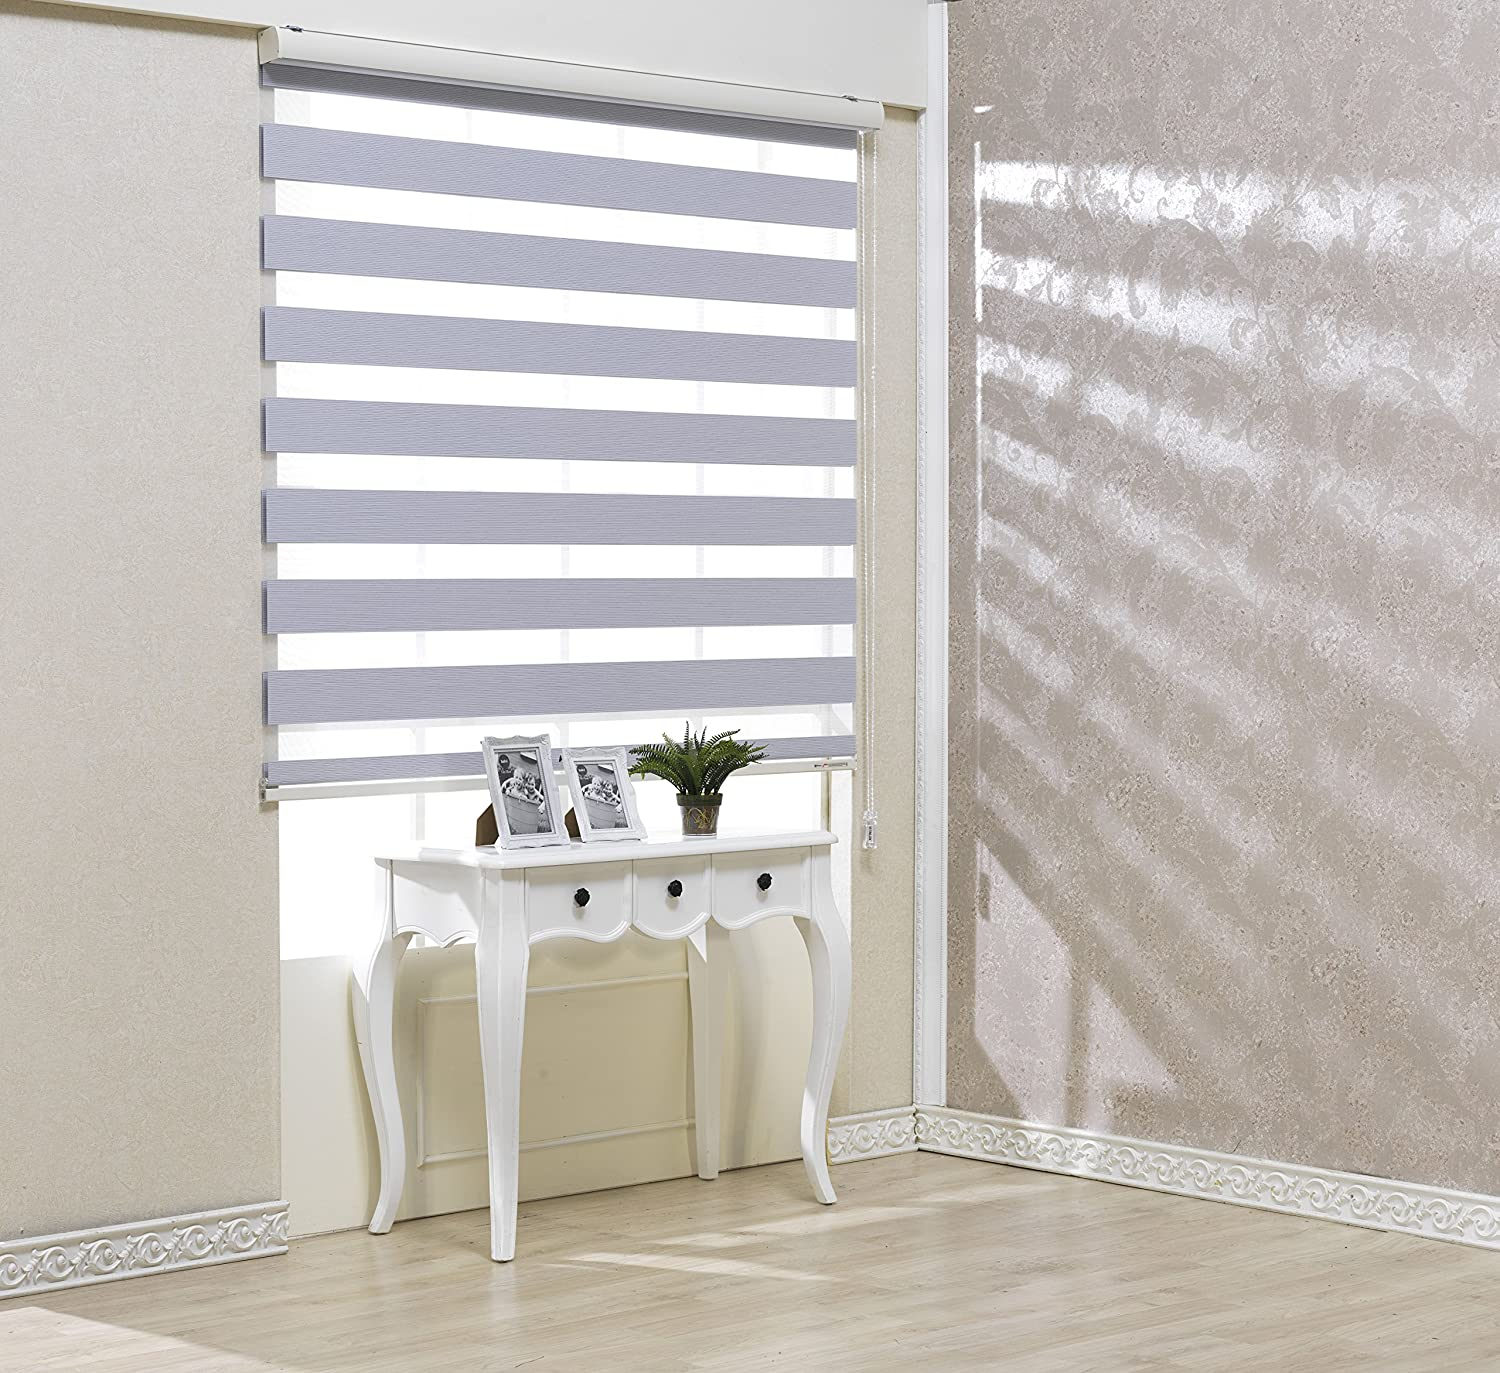 Custom Cut to Size, [Winsharp Blackout Ellis, White, W 91 x H 103 inch] Zebra Roller Blinds, Dual Layer Shades, Sheer or Privacy Light Control, Day and Night Window Drapes, 20 to 110 inch wide